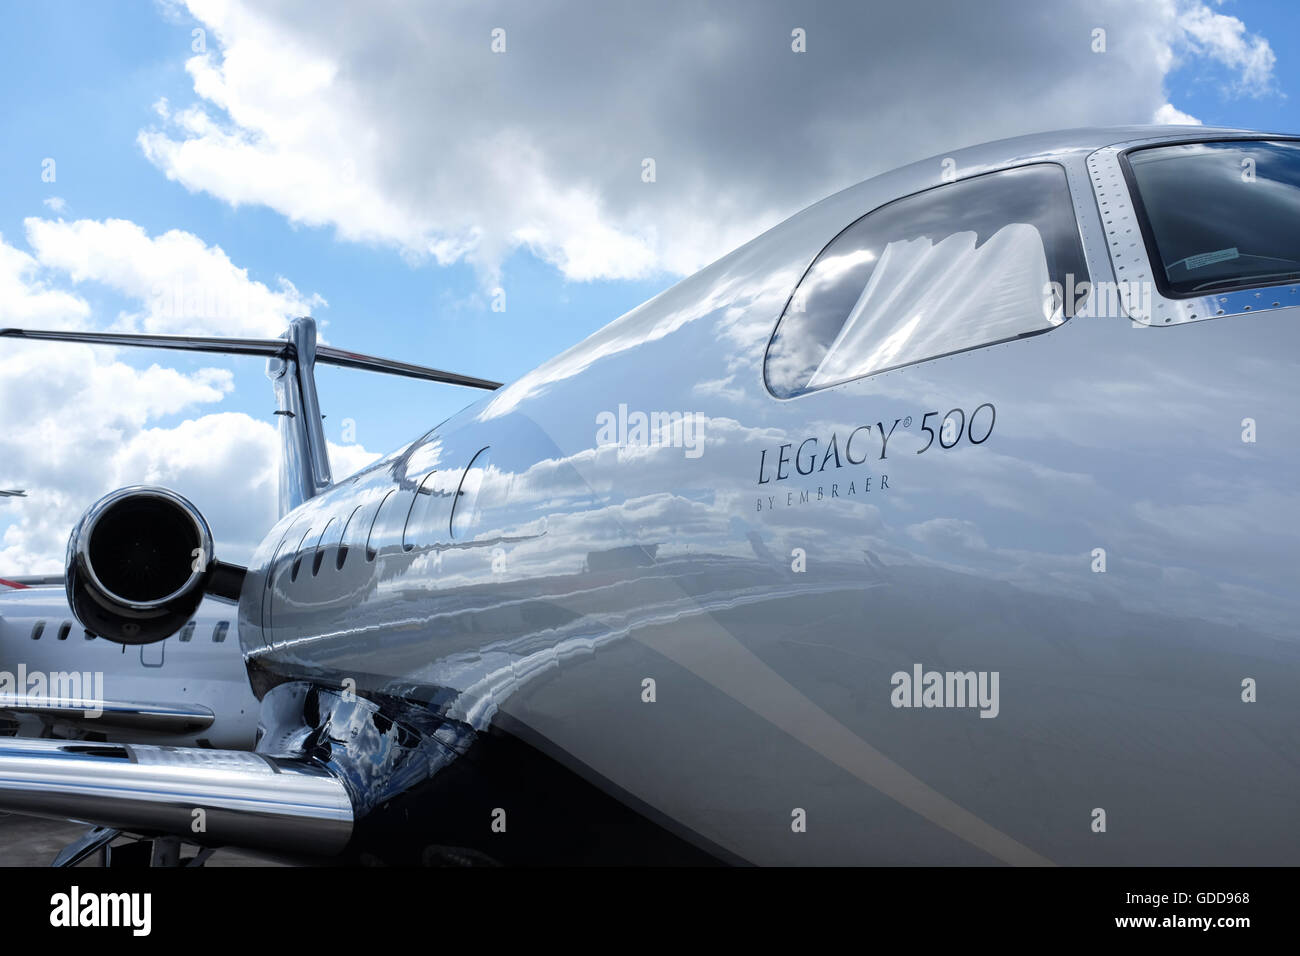 The Legacy 500 business jet by Embraer. - Stock Image